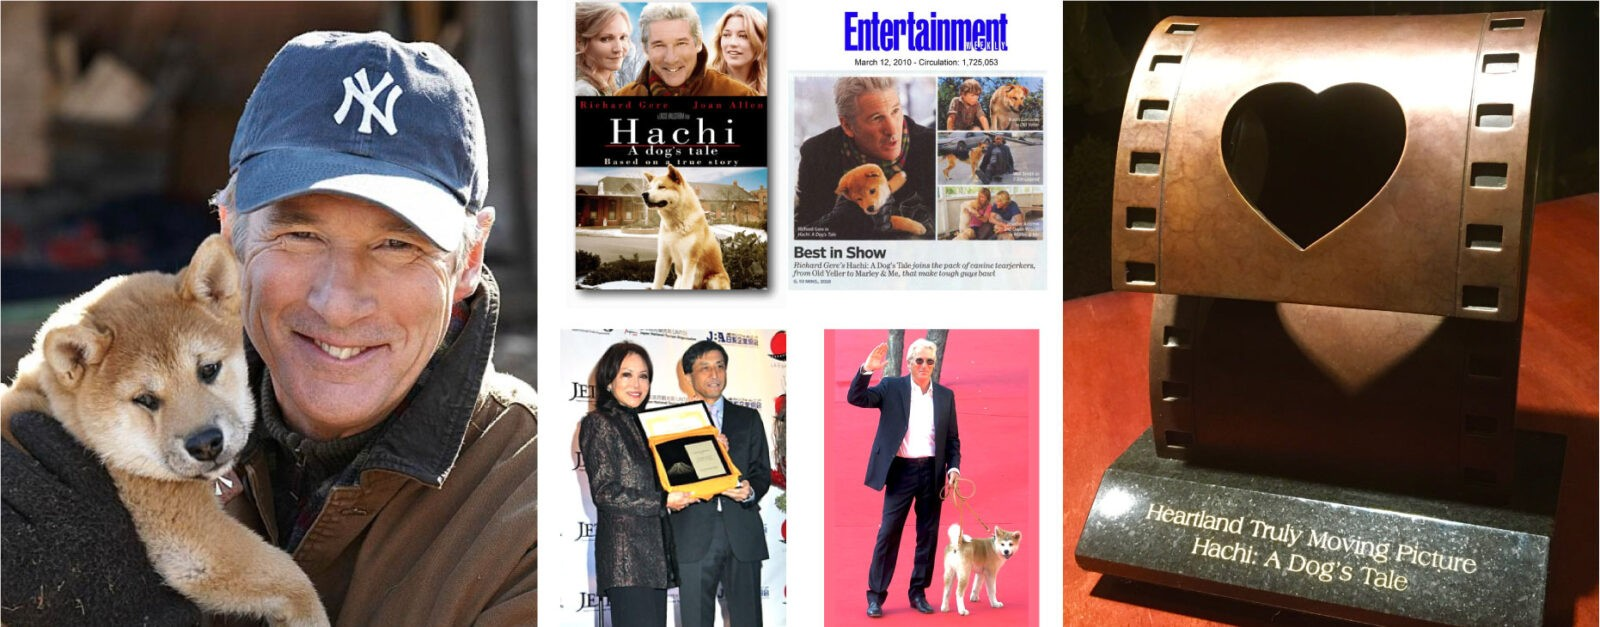 Hachi: A Dog's Tale Richard Gere & Awards